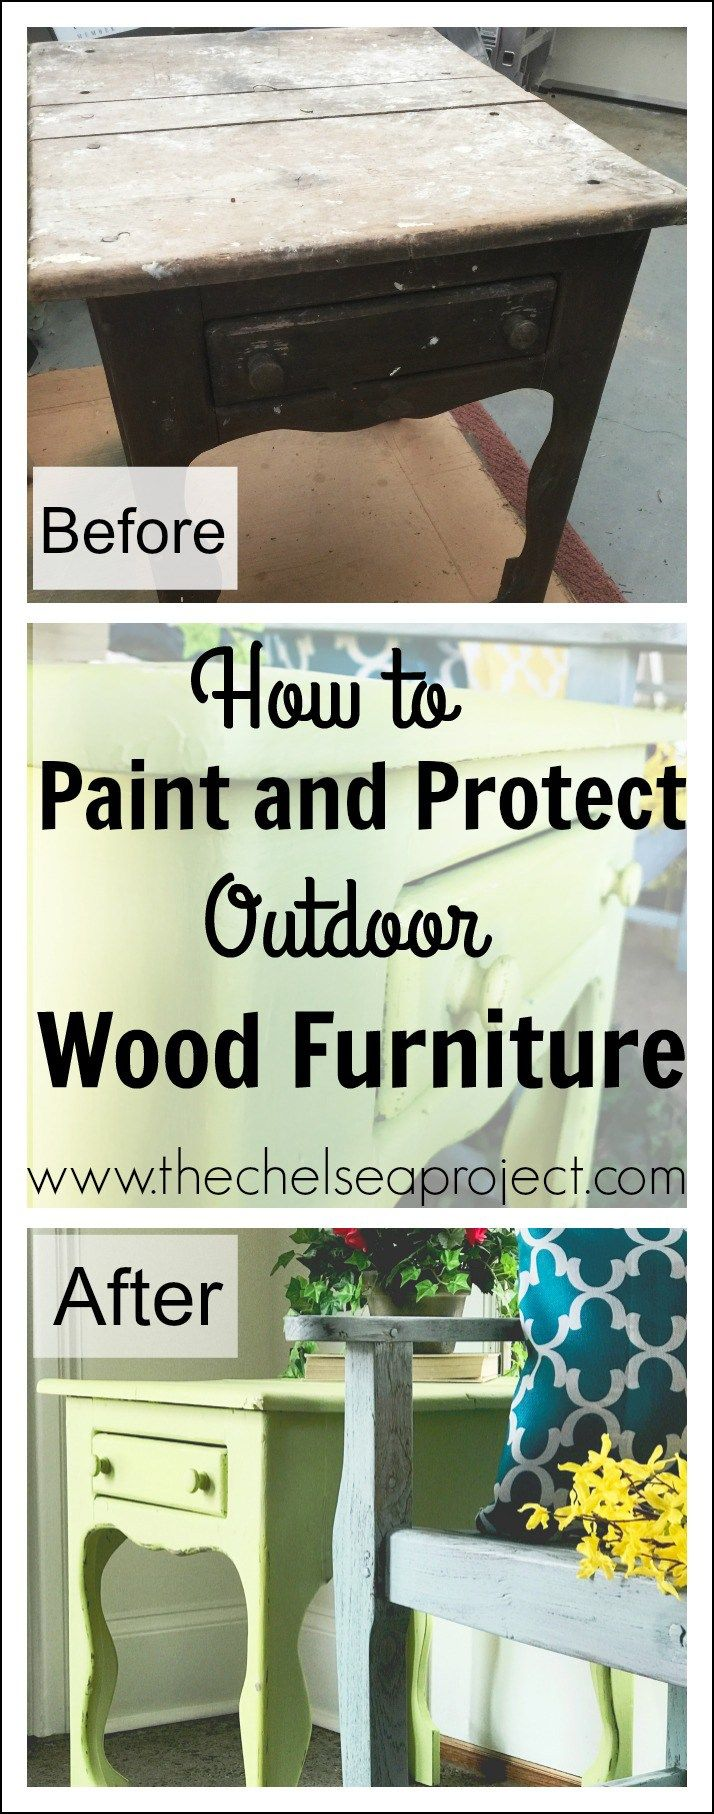 25 Unique Outdoor Wood Projects Ideas On Pinterest Outdoor Pallet Projects Pallet And Pallet